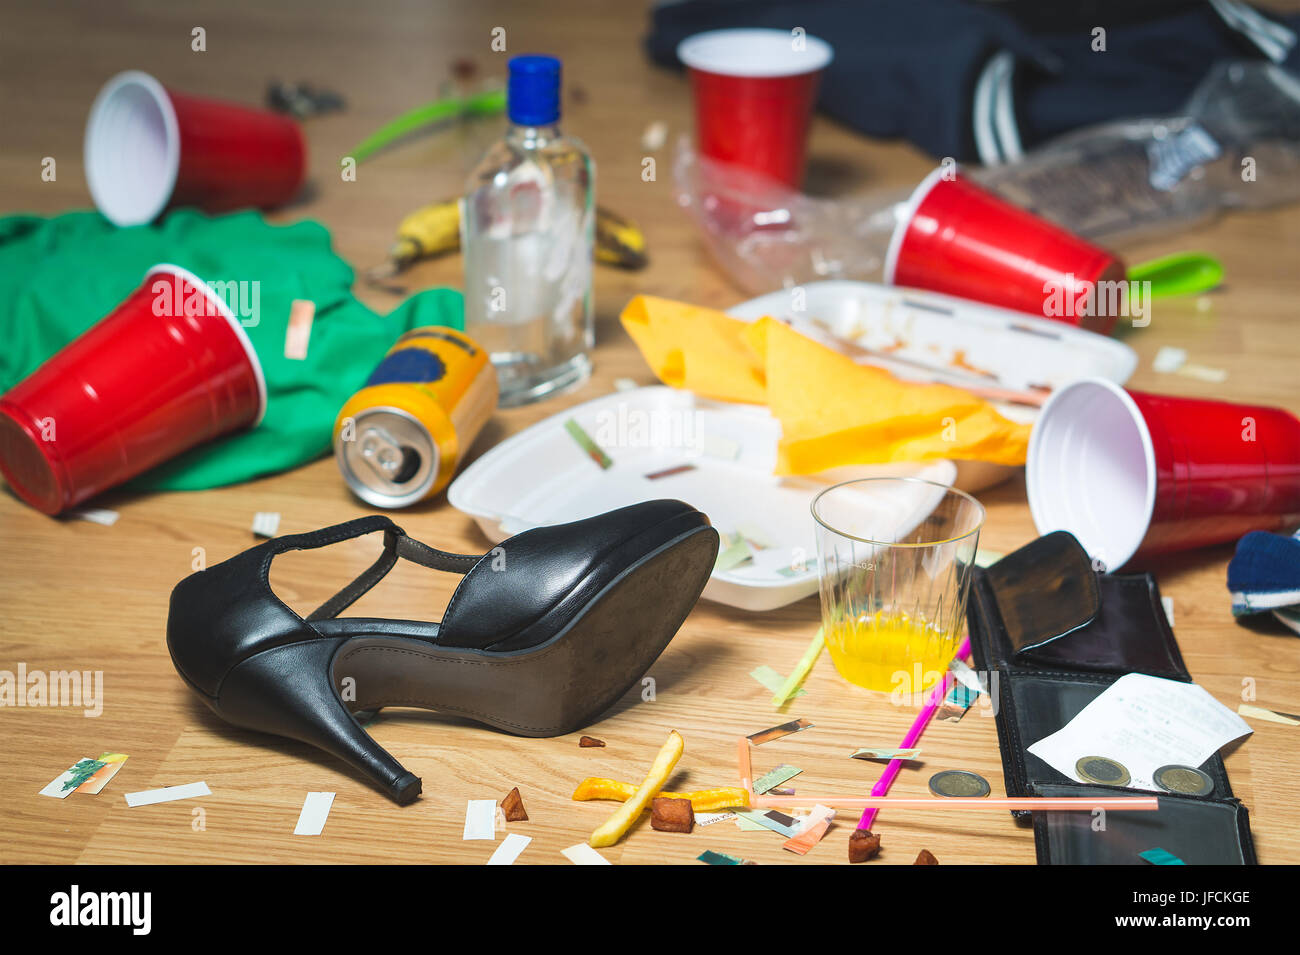 Terrible mess after party. Trash, bottles, food, cups and clothes on the floor. Messy apartment after guests leaving - Stock Image